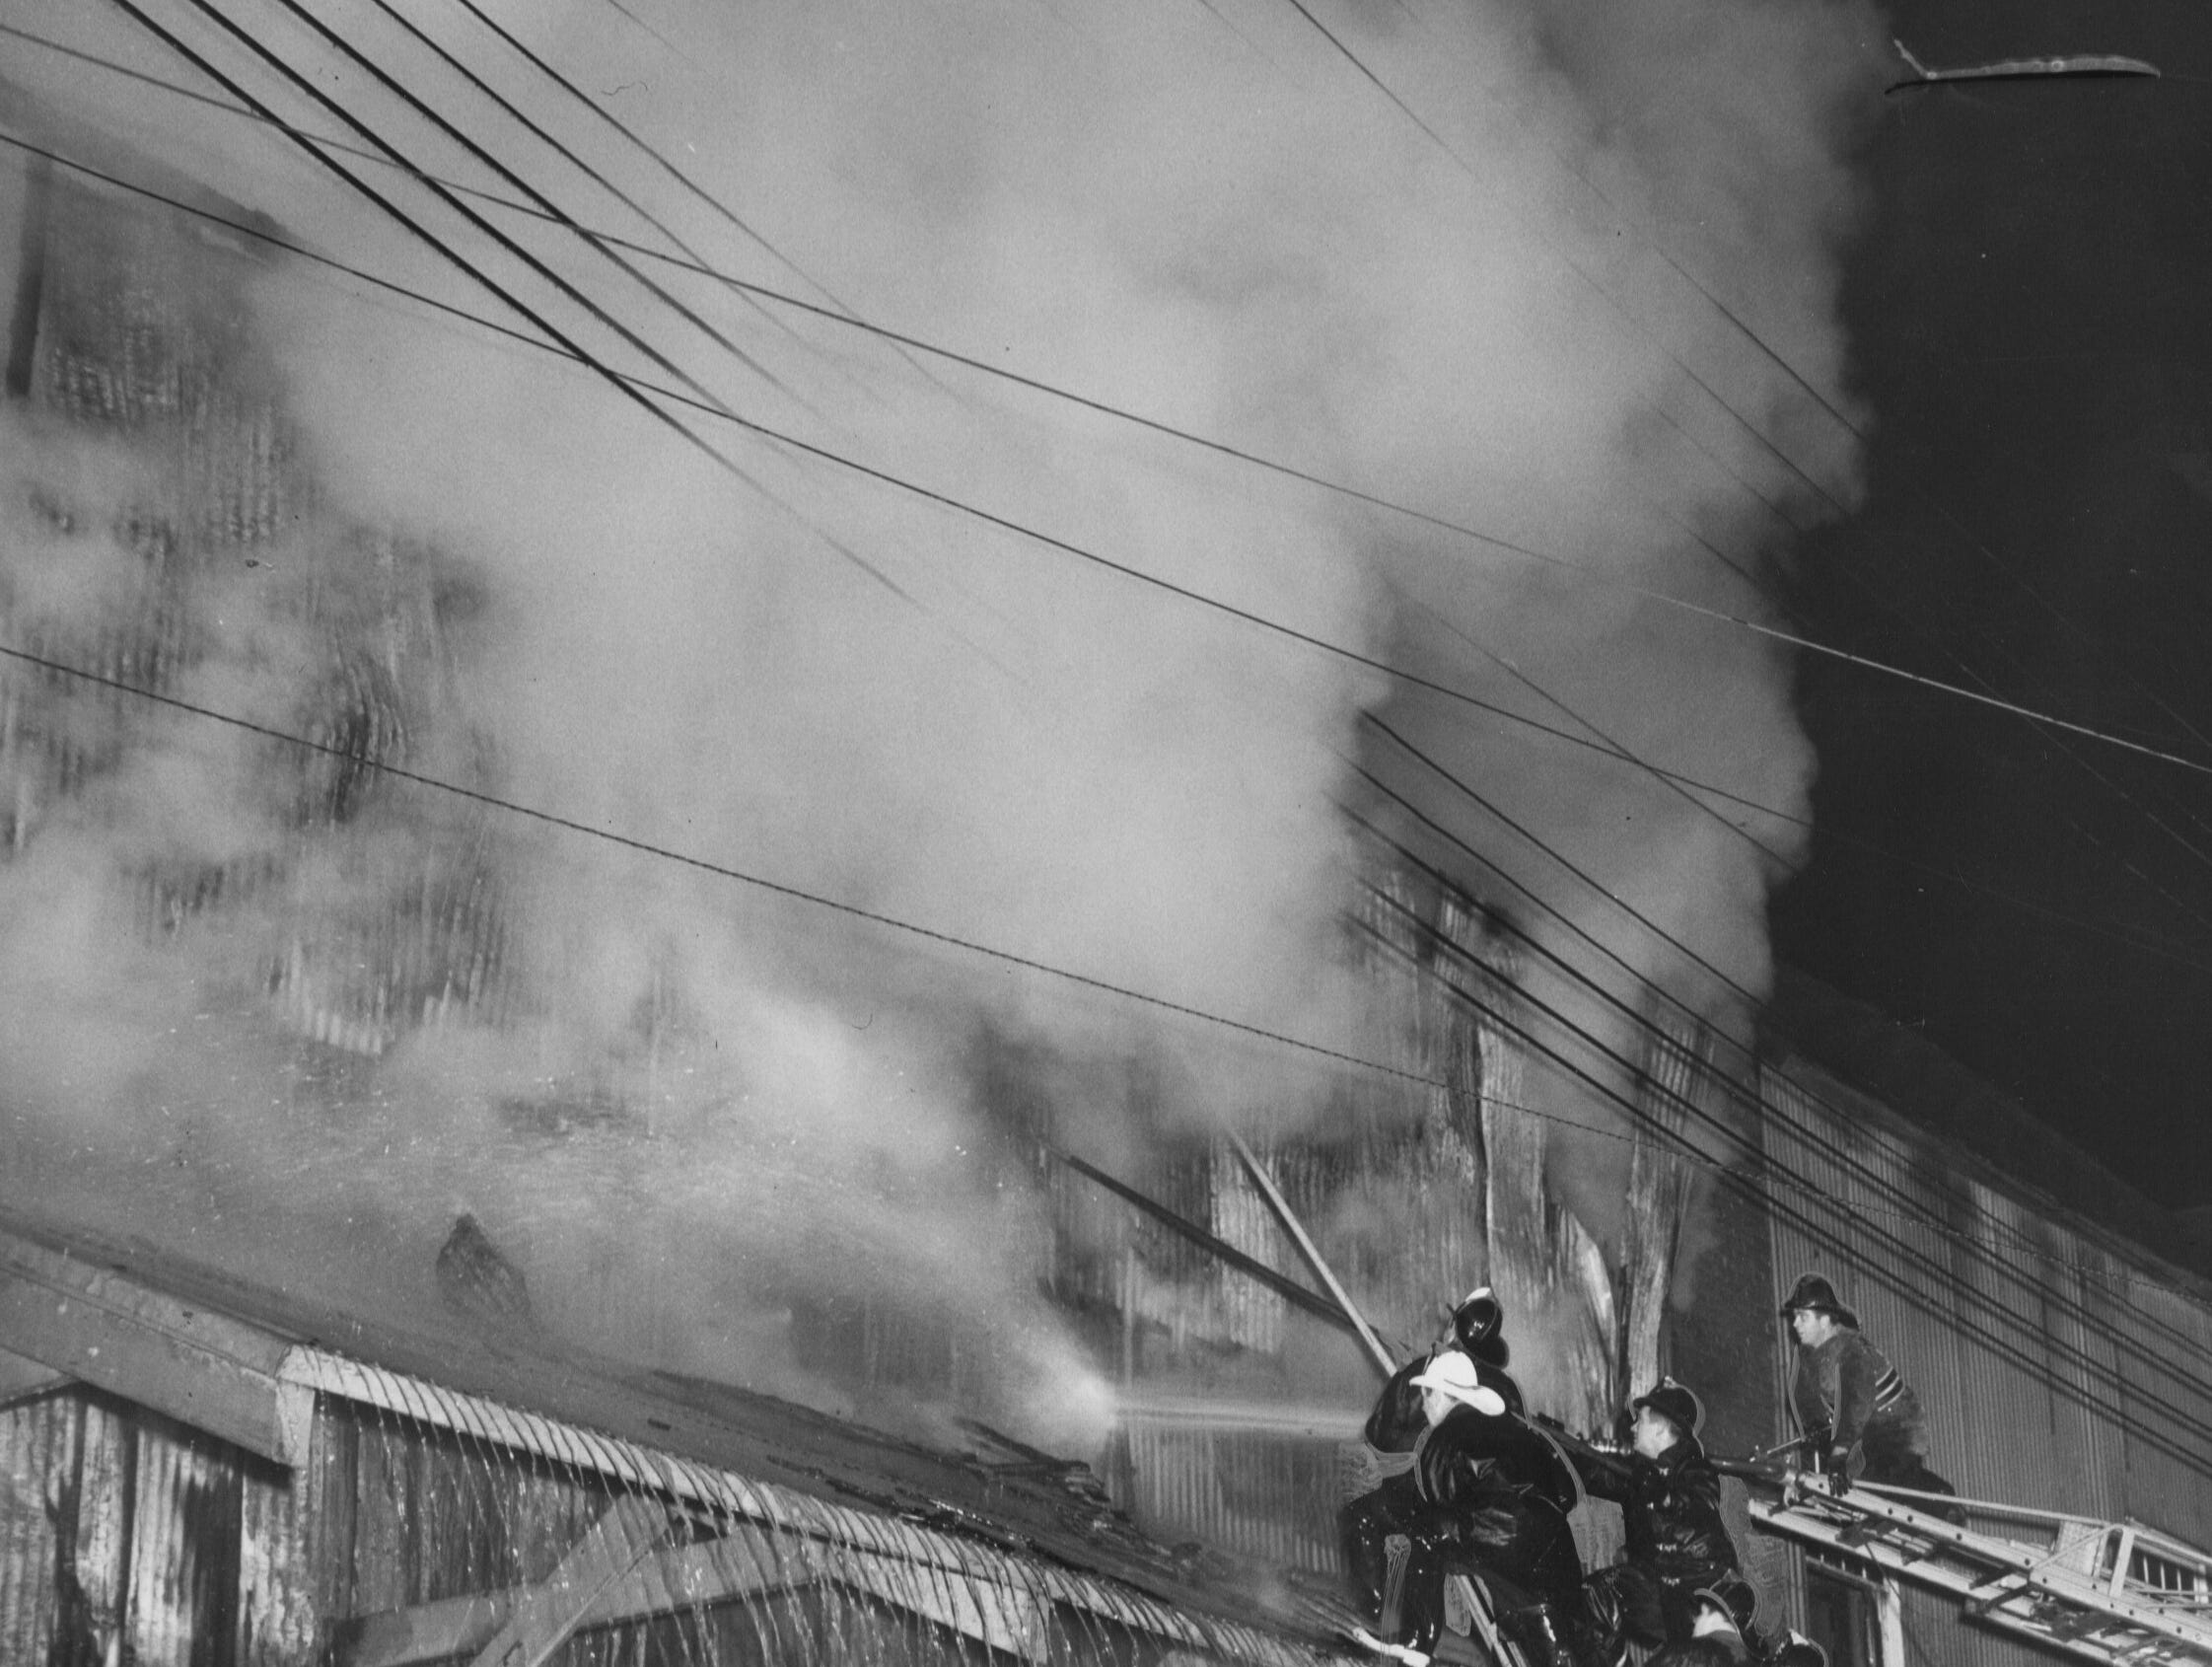 Firemen street level fight the blaze through a broken door panel as other direct hose streams from extension ladders and a hydraulic-lift tower during the fire that destroyed the Superior Paper warehouse building. 